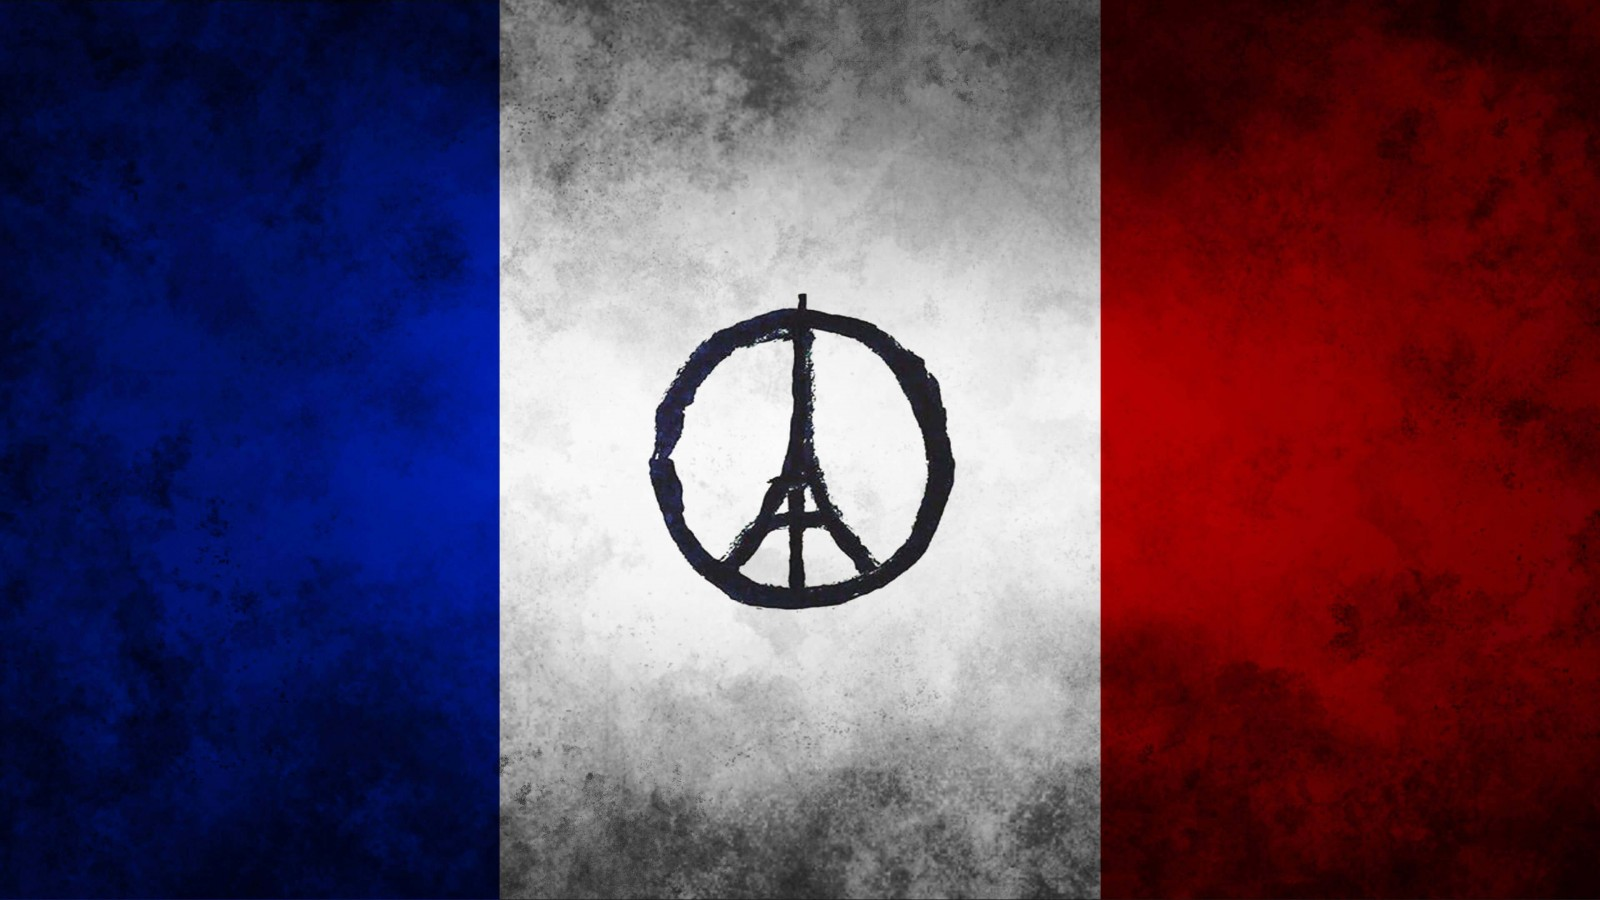 Download Pray For Paris HD Wallpaper For 1600 X 900